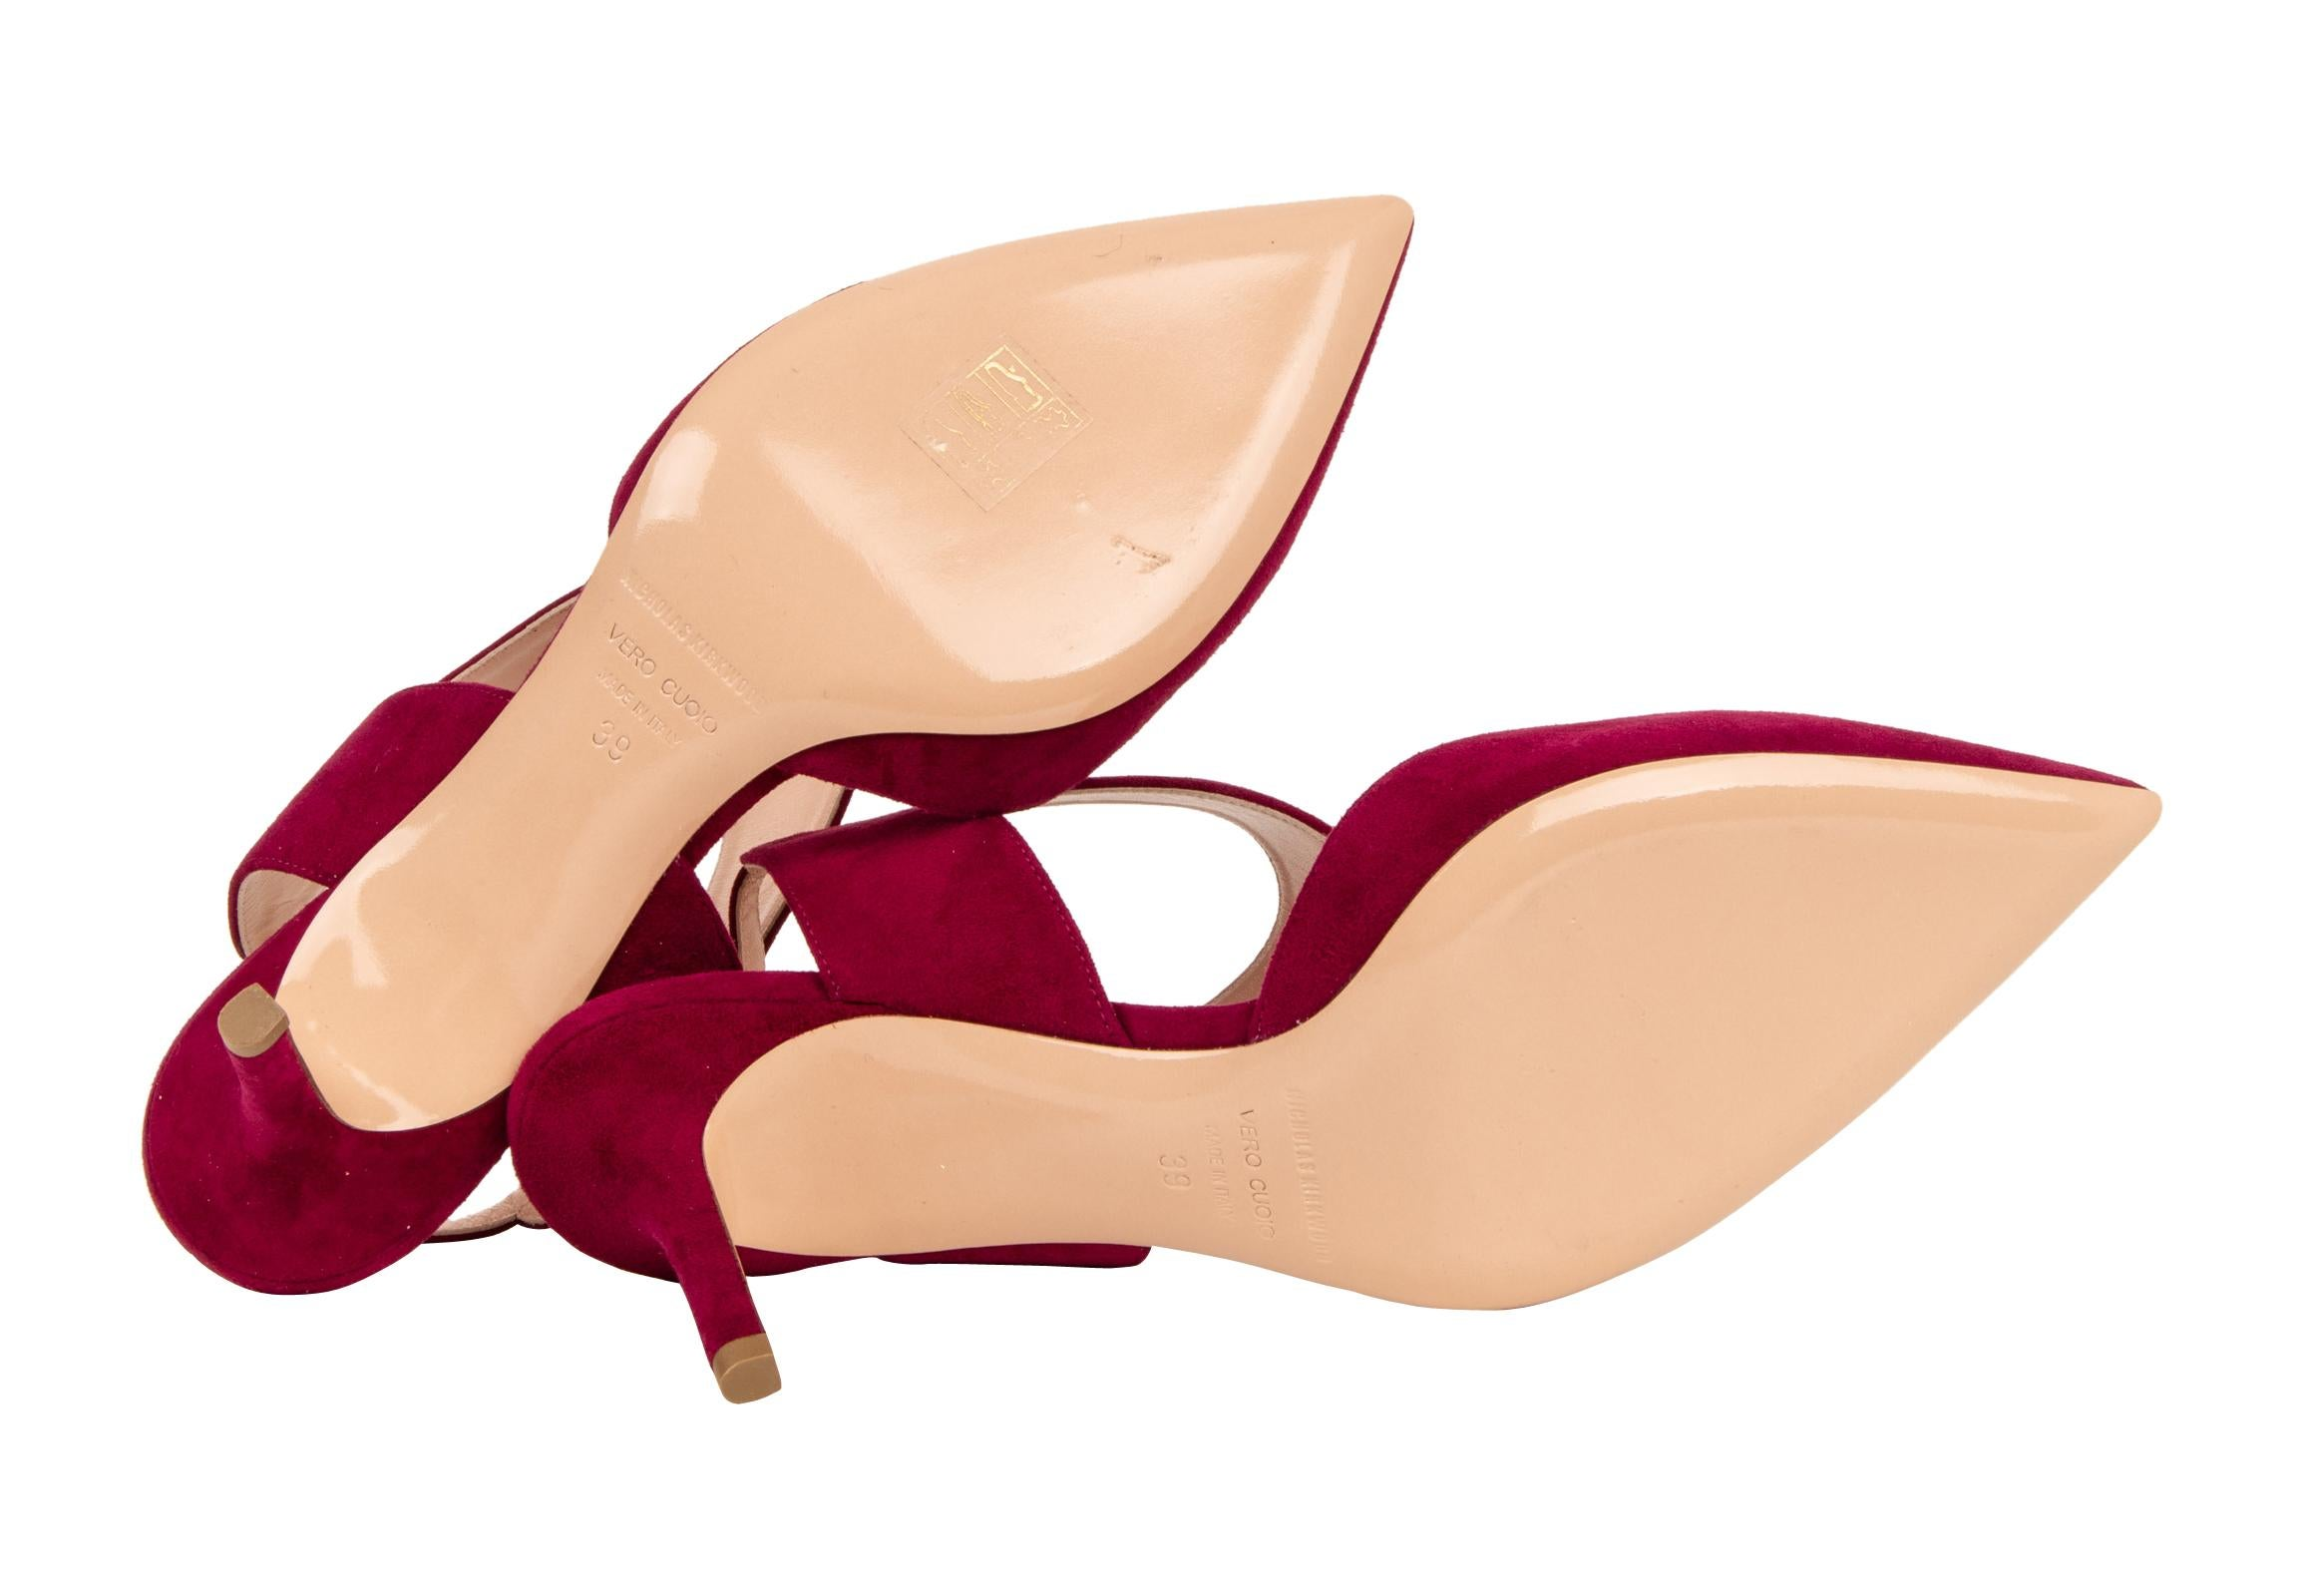 Nicholas Kirkwood Shoe Leda Suede Red Rich Claret 38 8 New W Box Clarette Sandals Crystal Brown For Sale At 1stdibs